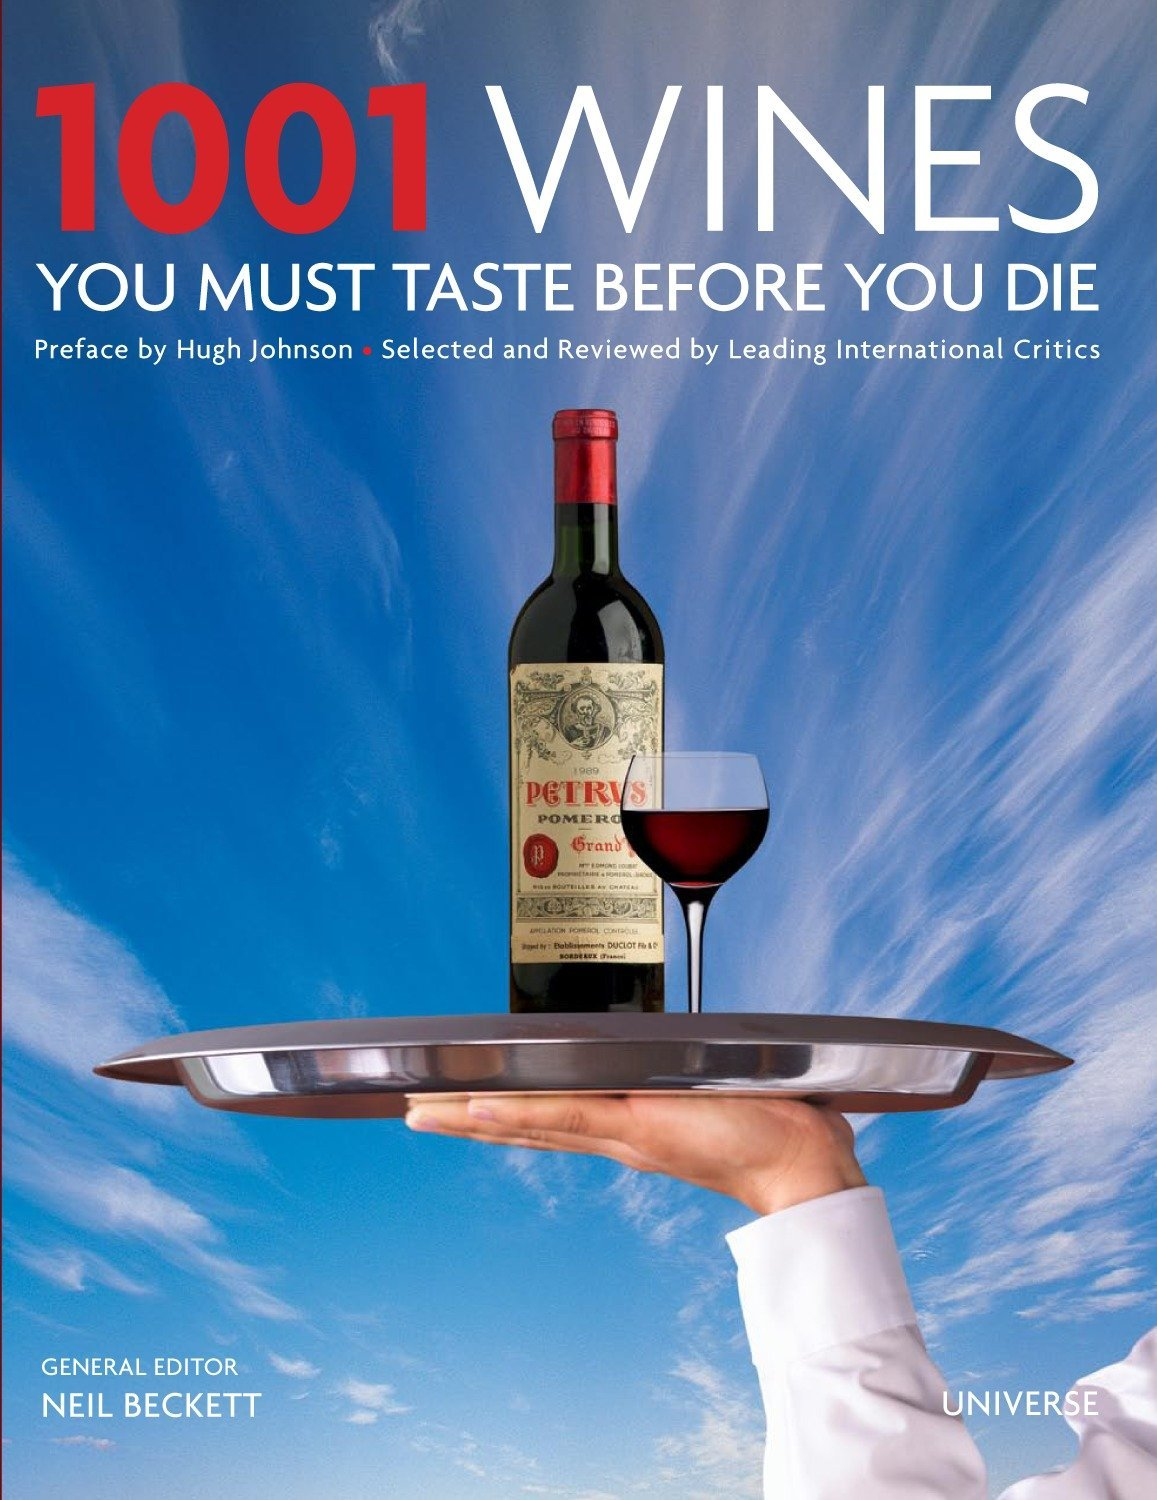 1001 Wines You Must Taste Before You Die: Universe, Neil Beckett, Hugh  Johnson: 9780789316837: Amazon.com: Books